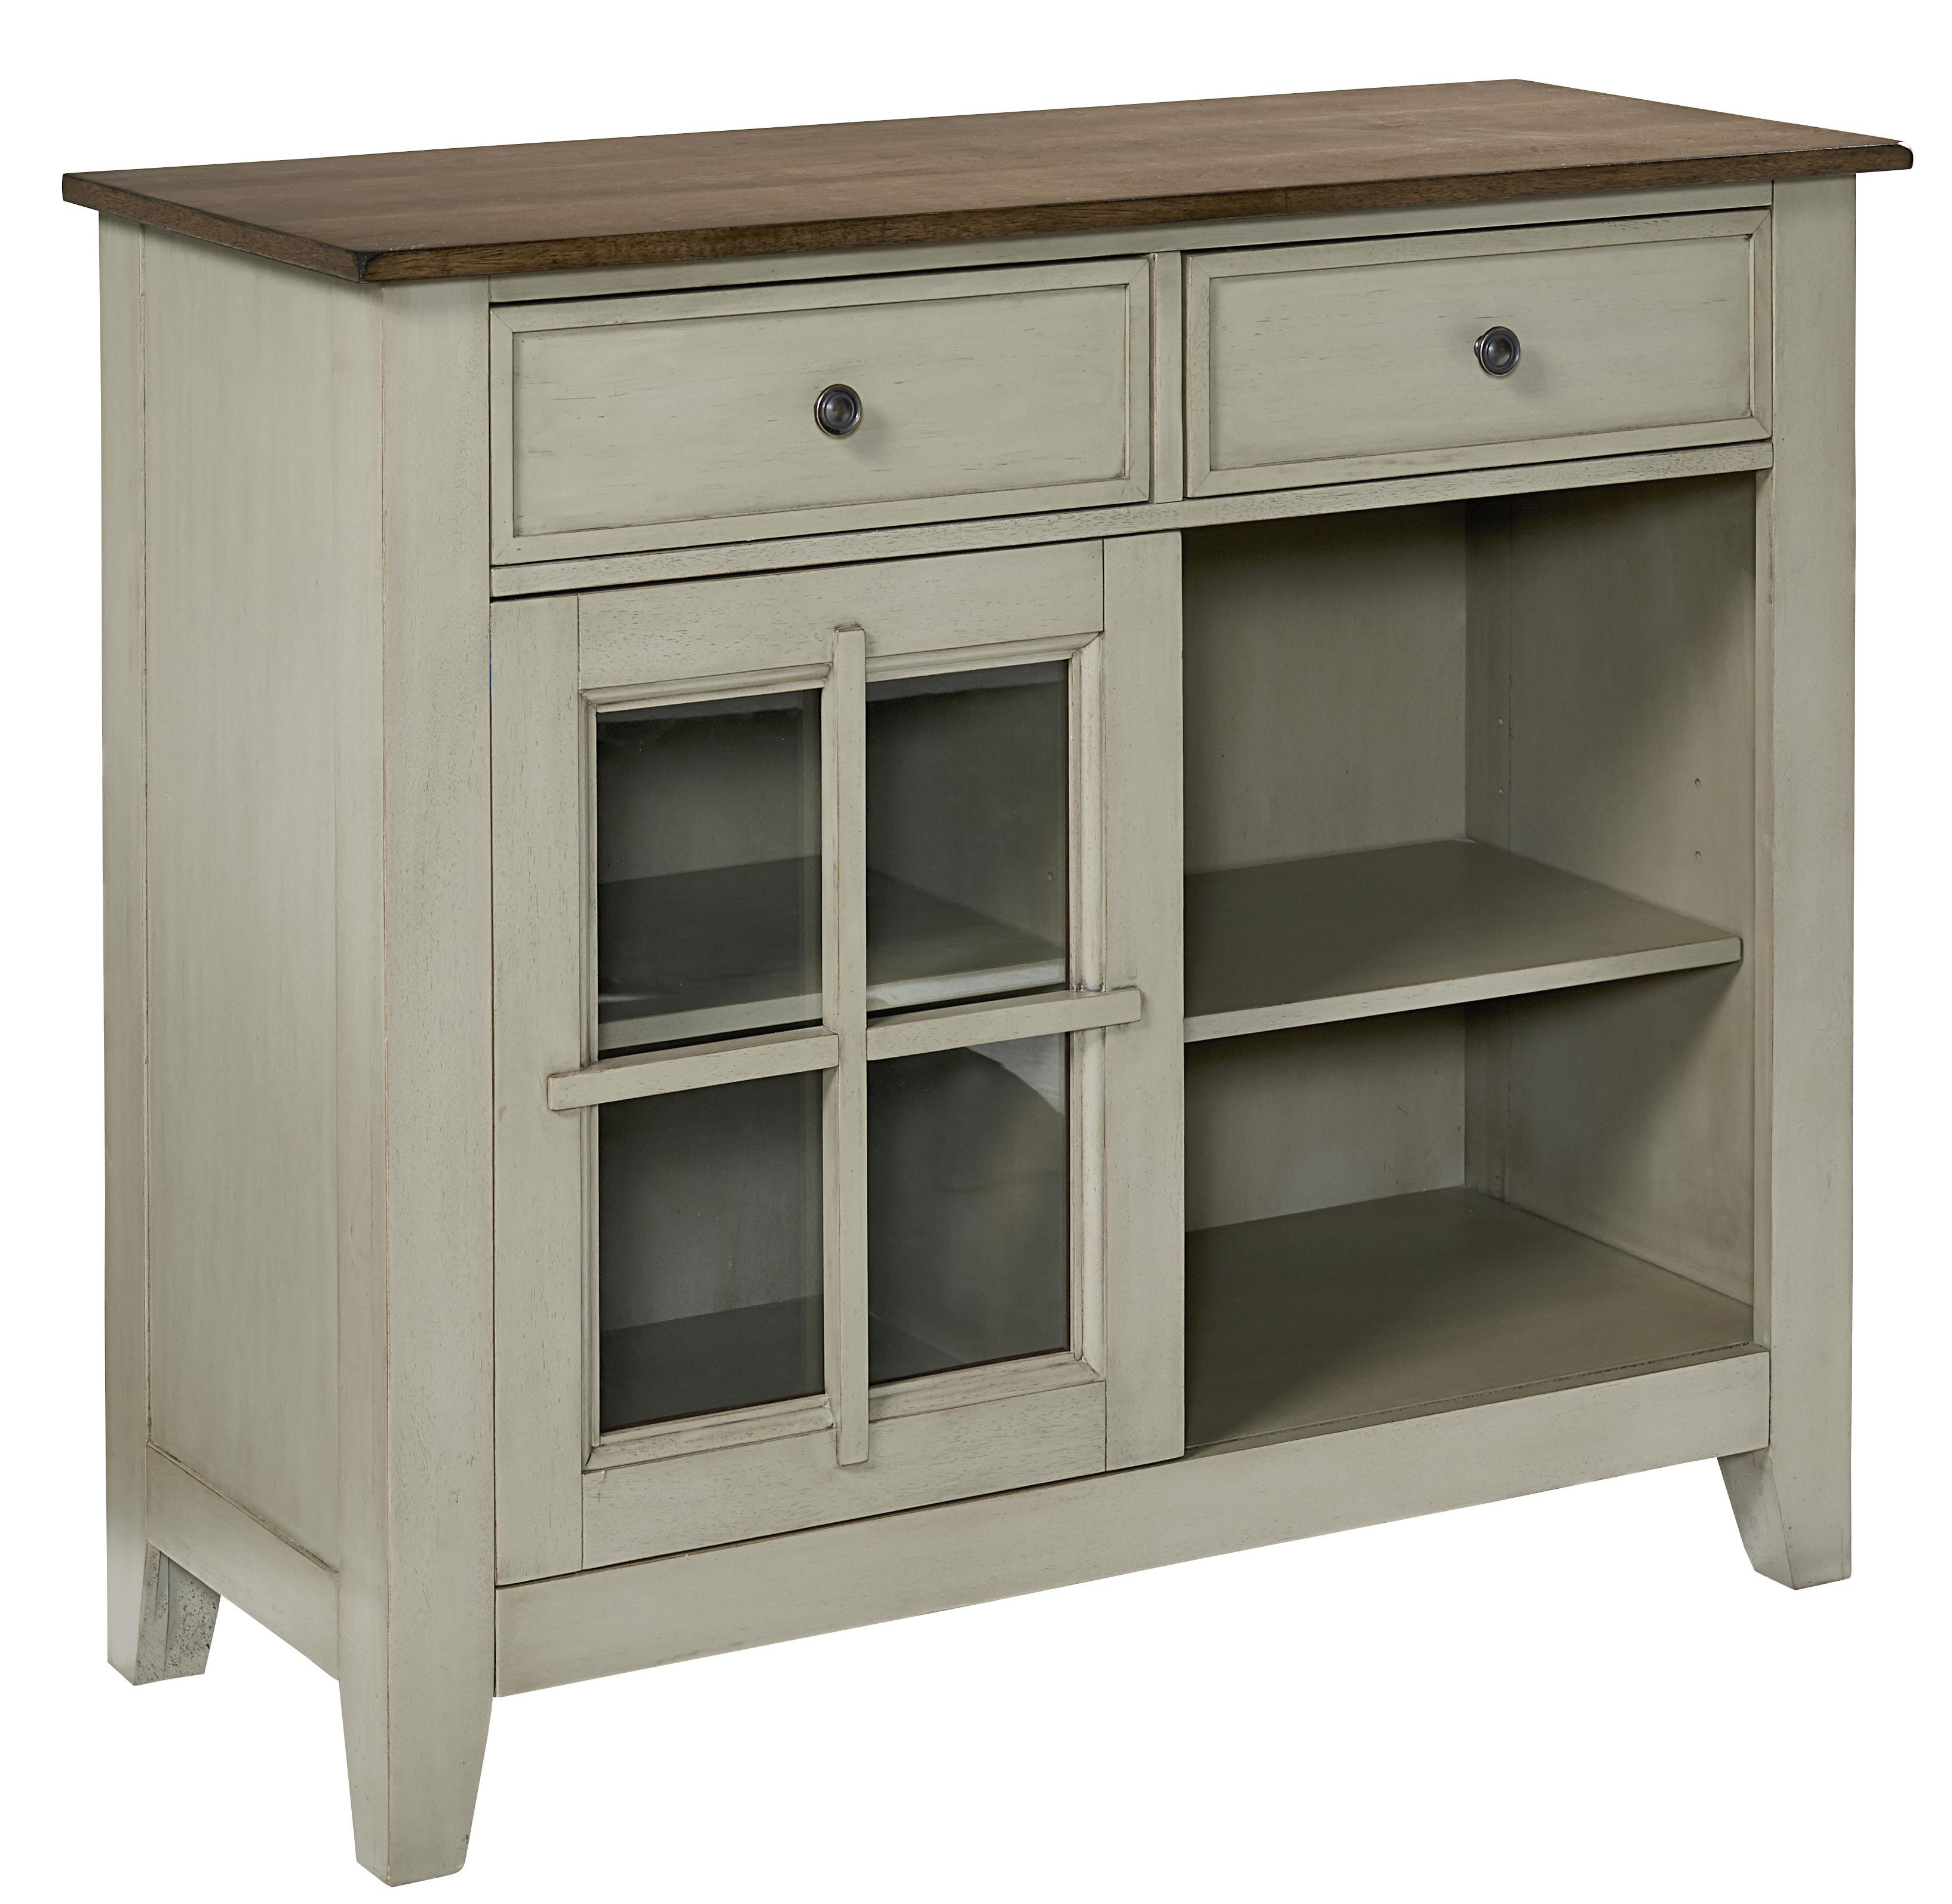 Standard Furniture Pendleton Sage Sideboard     - Item Number: 15628